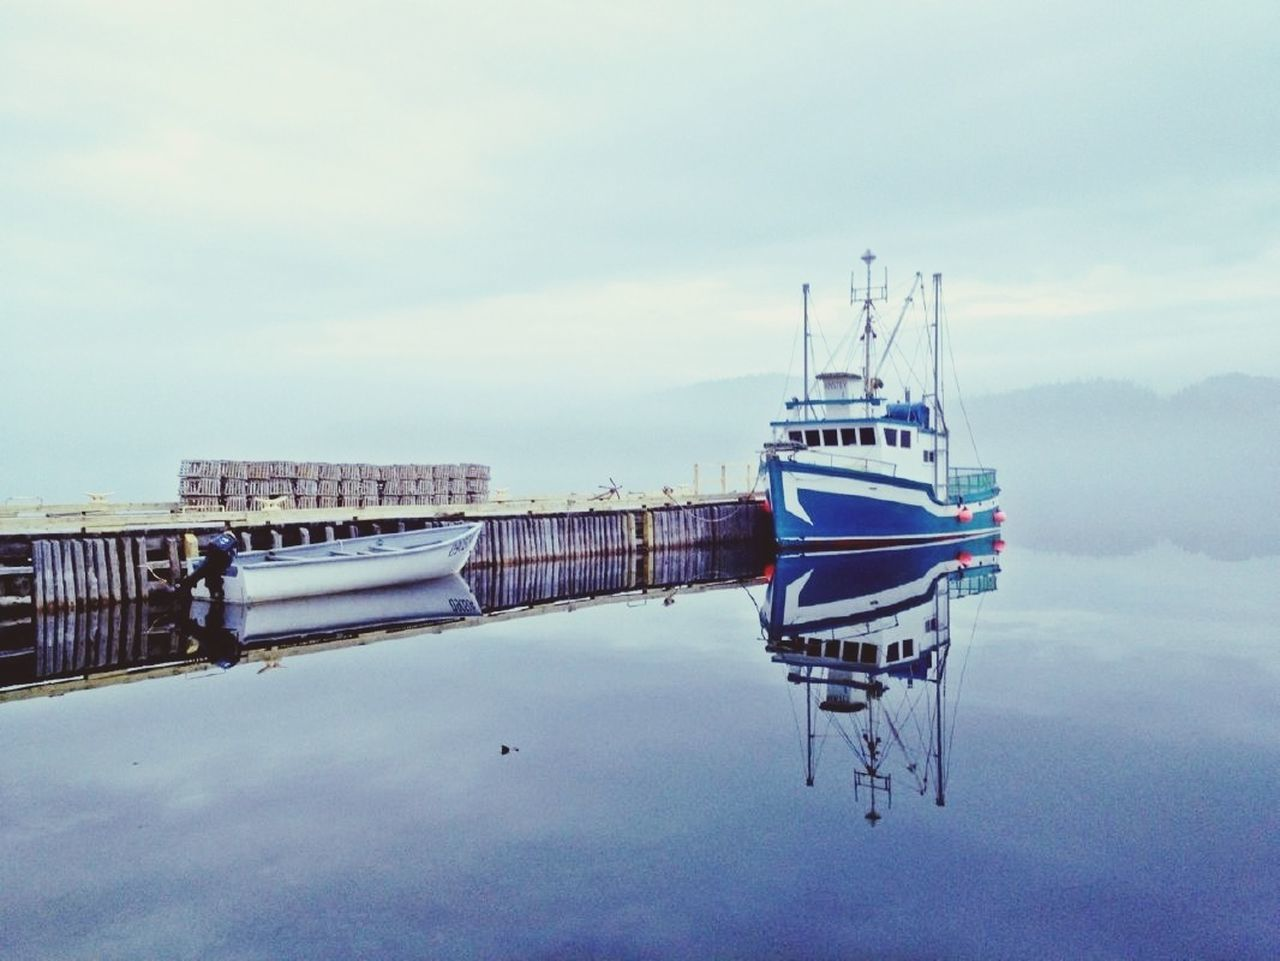 On The Fog - iPhone 4S - Newfoundland - Canada AMPt_community The Illusionist - 2014 EyeEm Awards IPhoneography Time To Reflect